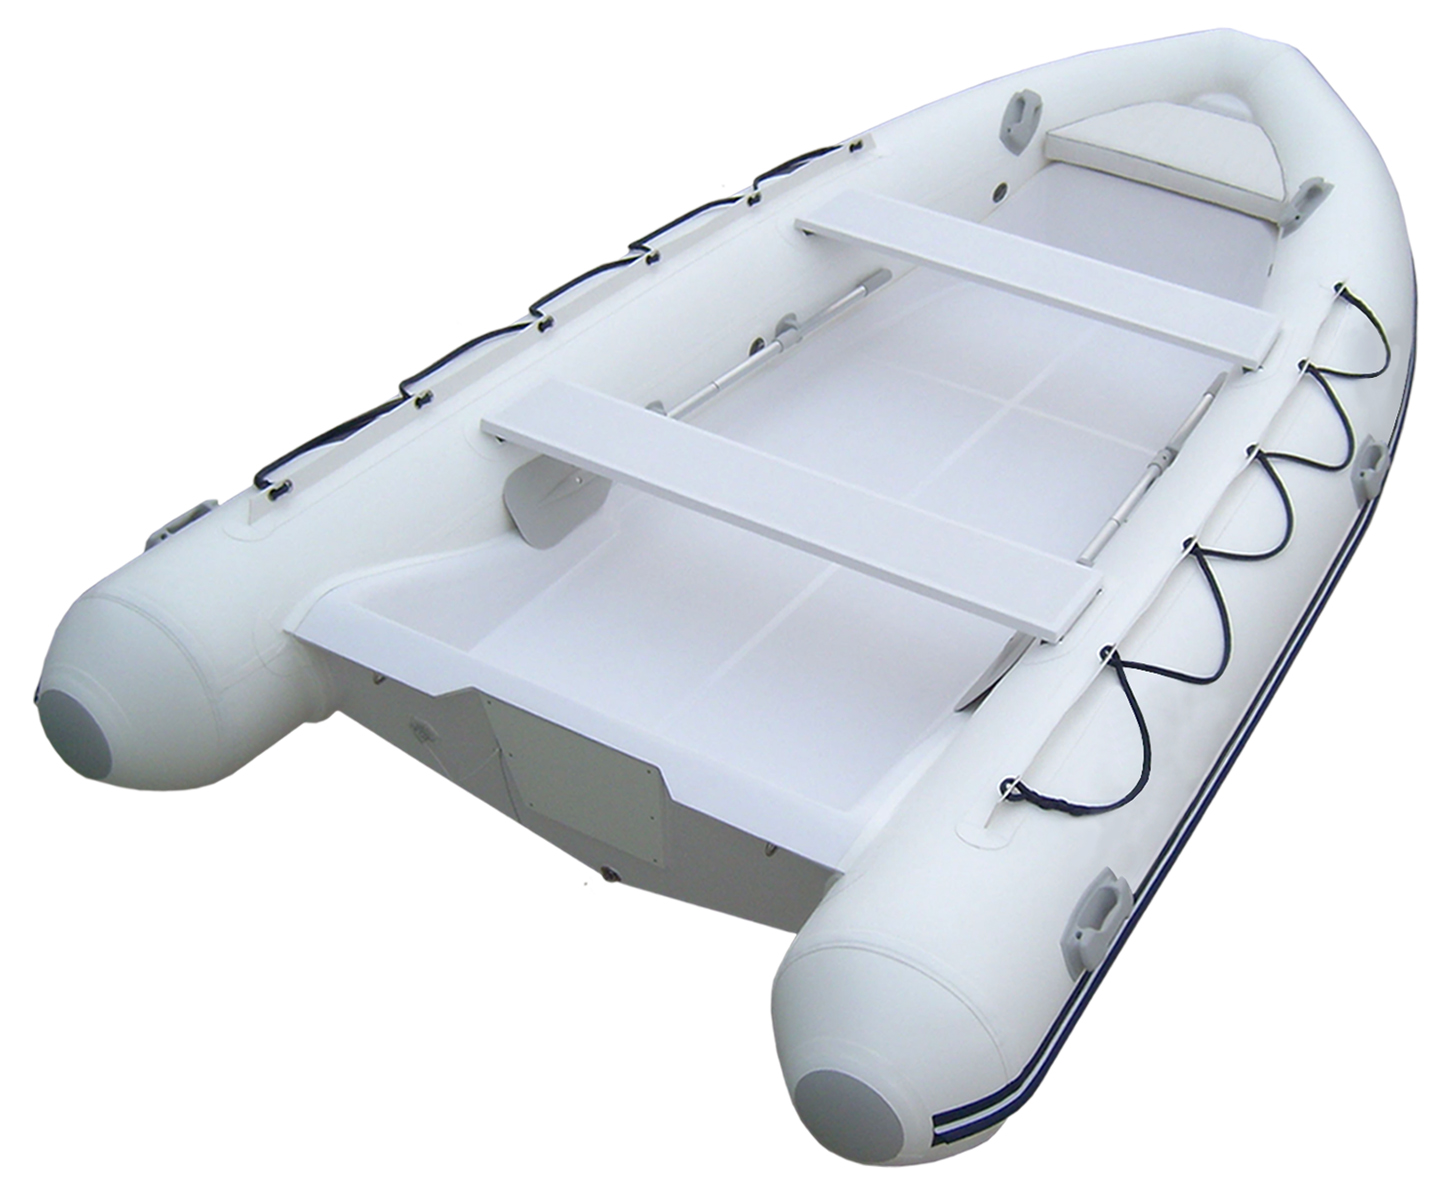 Dinghy, 4.2m 14' F'Glass Hull-Floor Grey 2